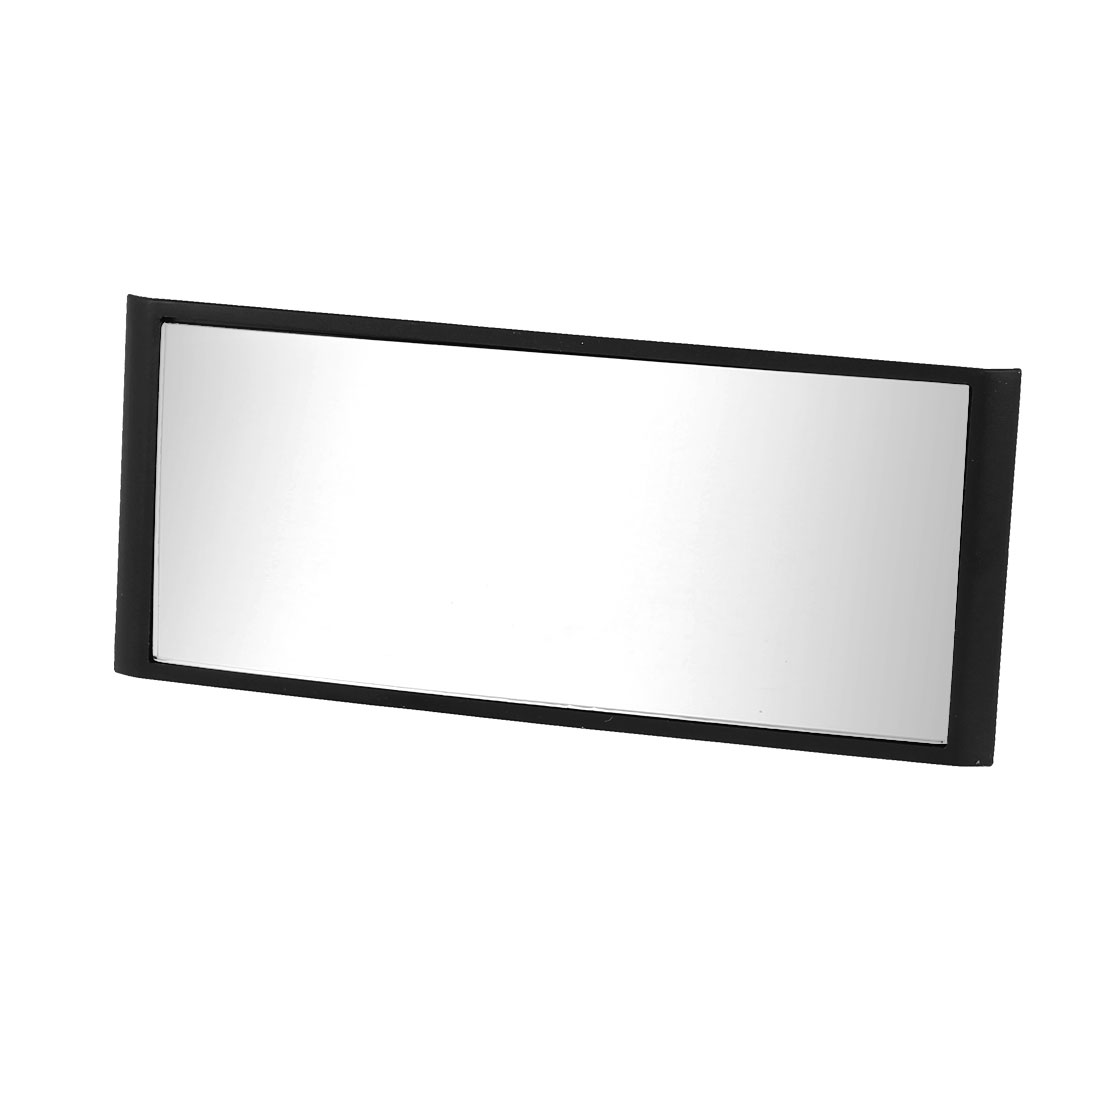 Car Black Plastic Frame Wide Angle Rectangular Interior Rearview Mirror 13cm